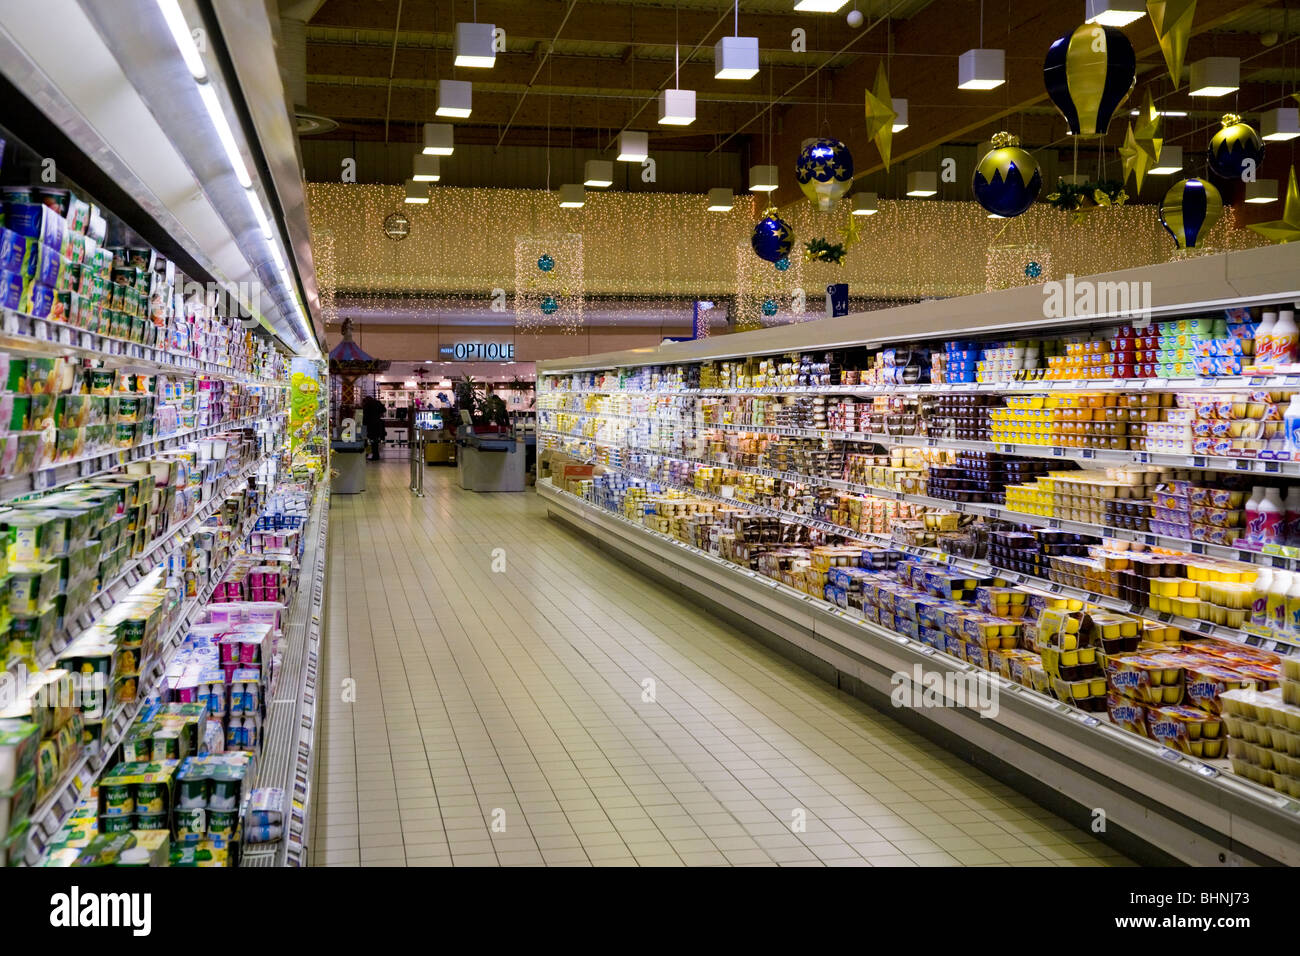 A display of food and dairy product / products in the chiller cabinet refrigerator / fridges in a French supermarket. France. & A display of food and dairy product / products in the chiller ...